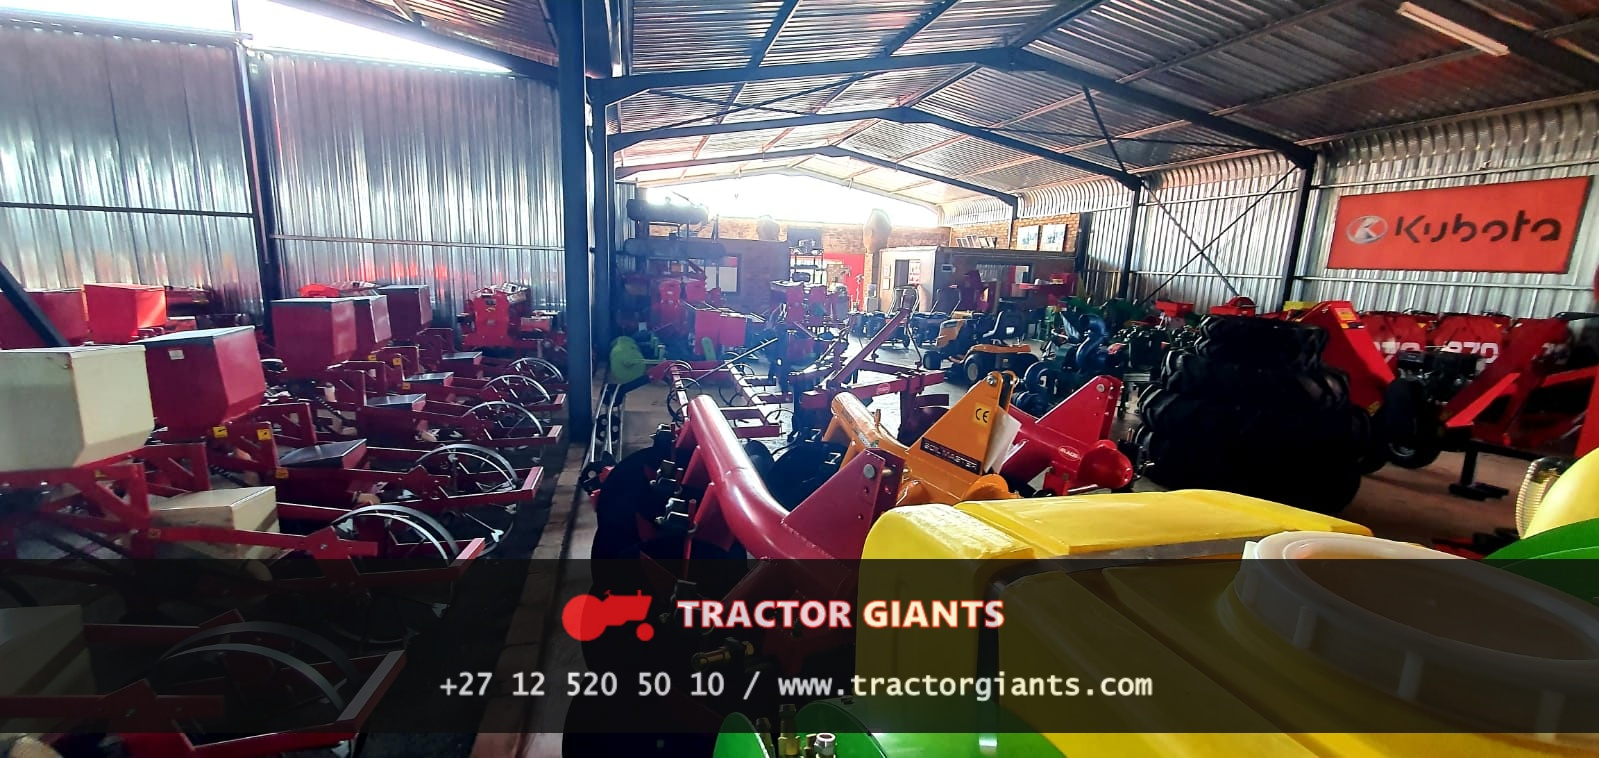 Farming Implements - Tractor Giants 1